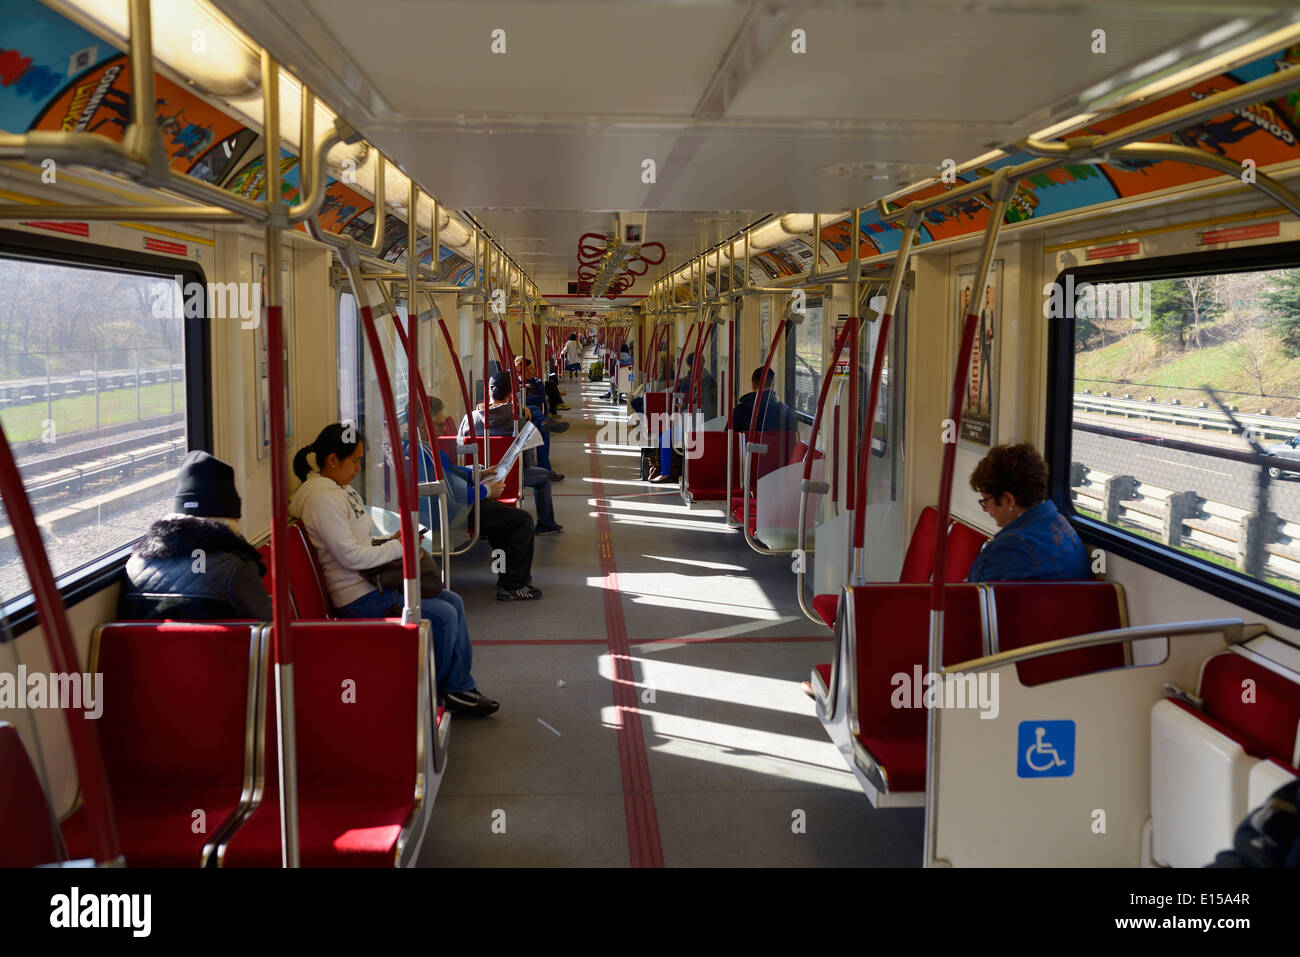 New TTC subway cars with open interior gangways called the Toronto Rocket outside at Allan Expressway - Stock Image